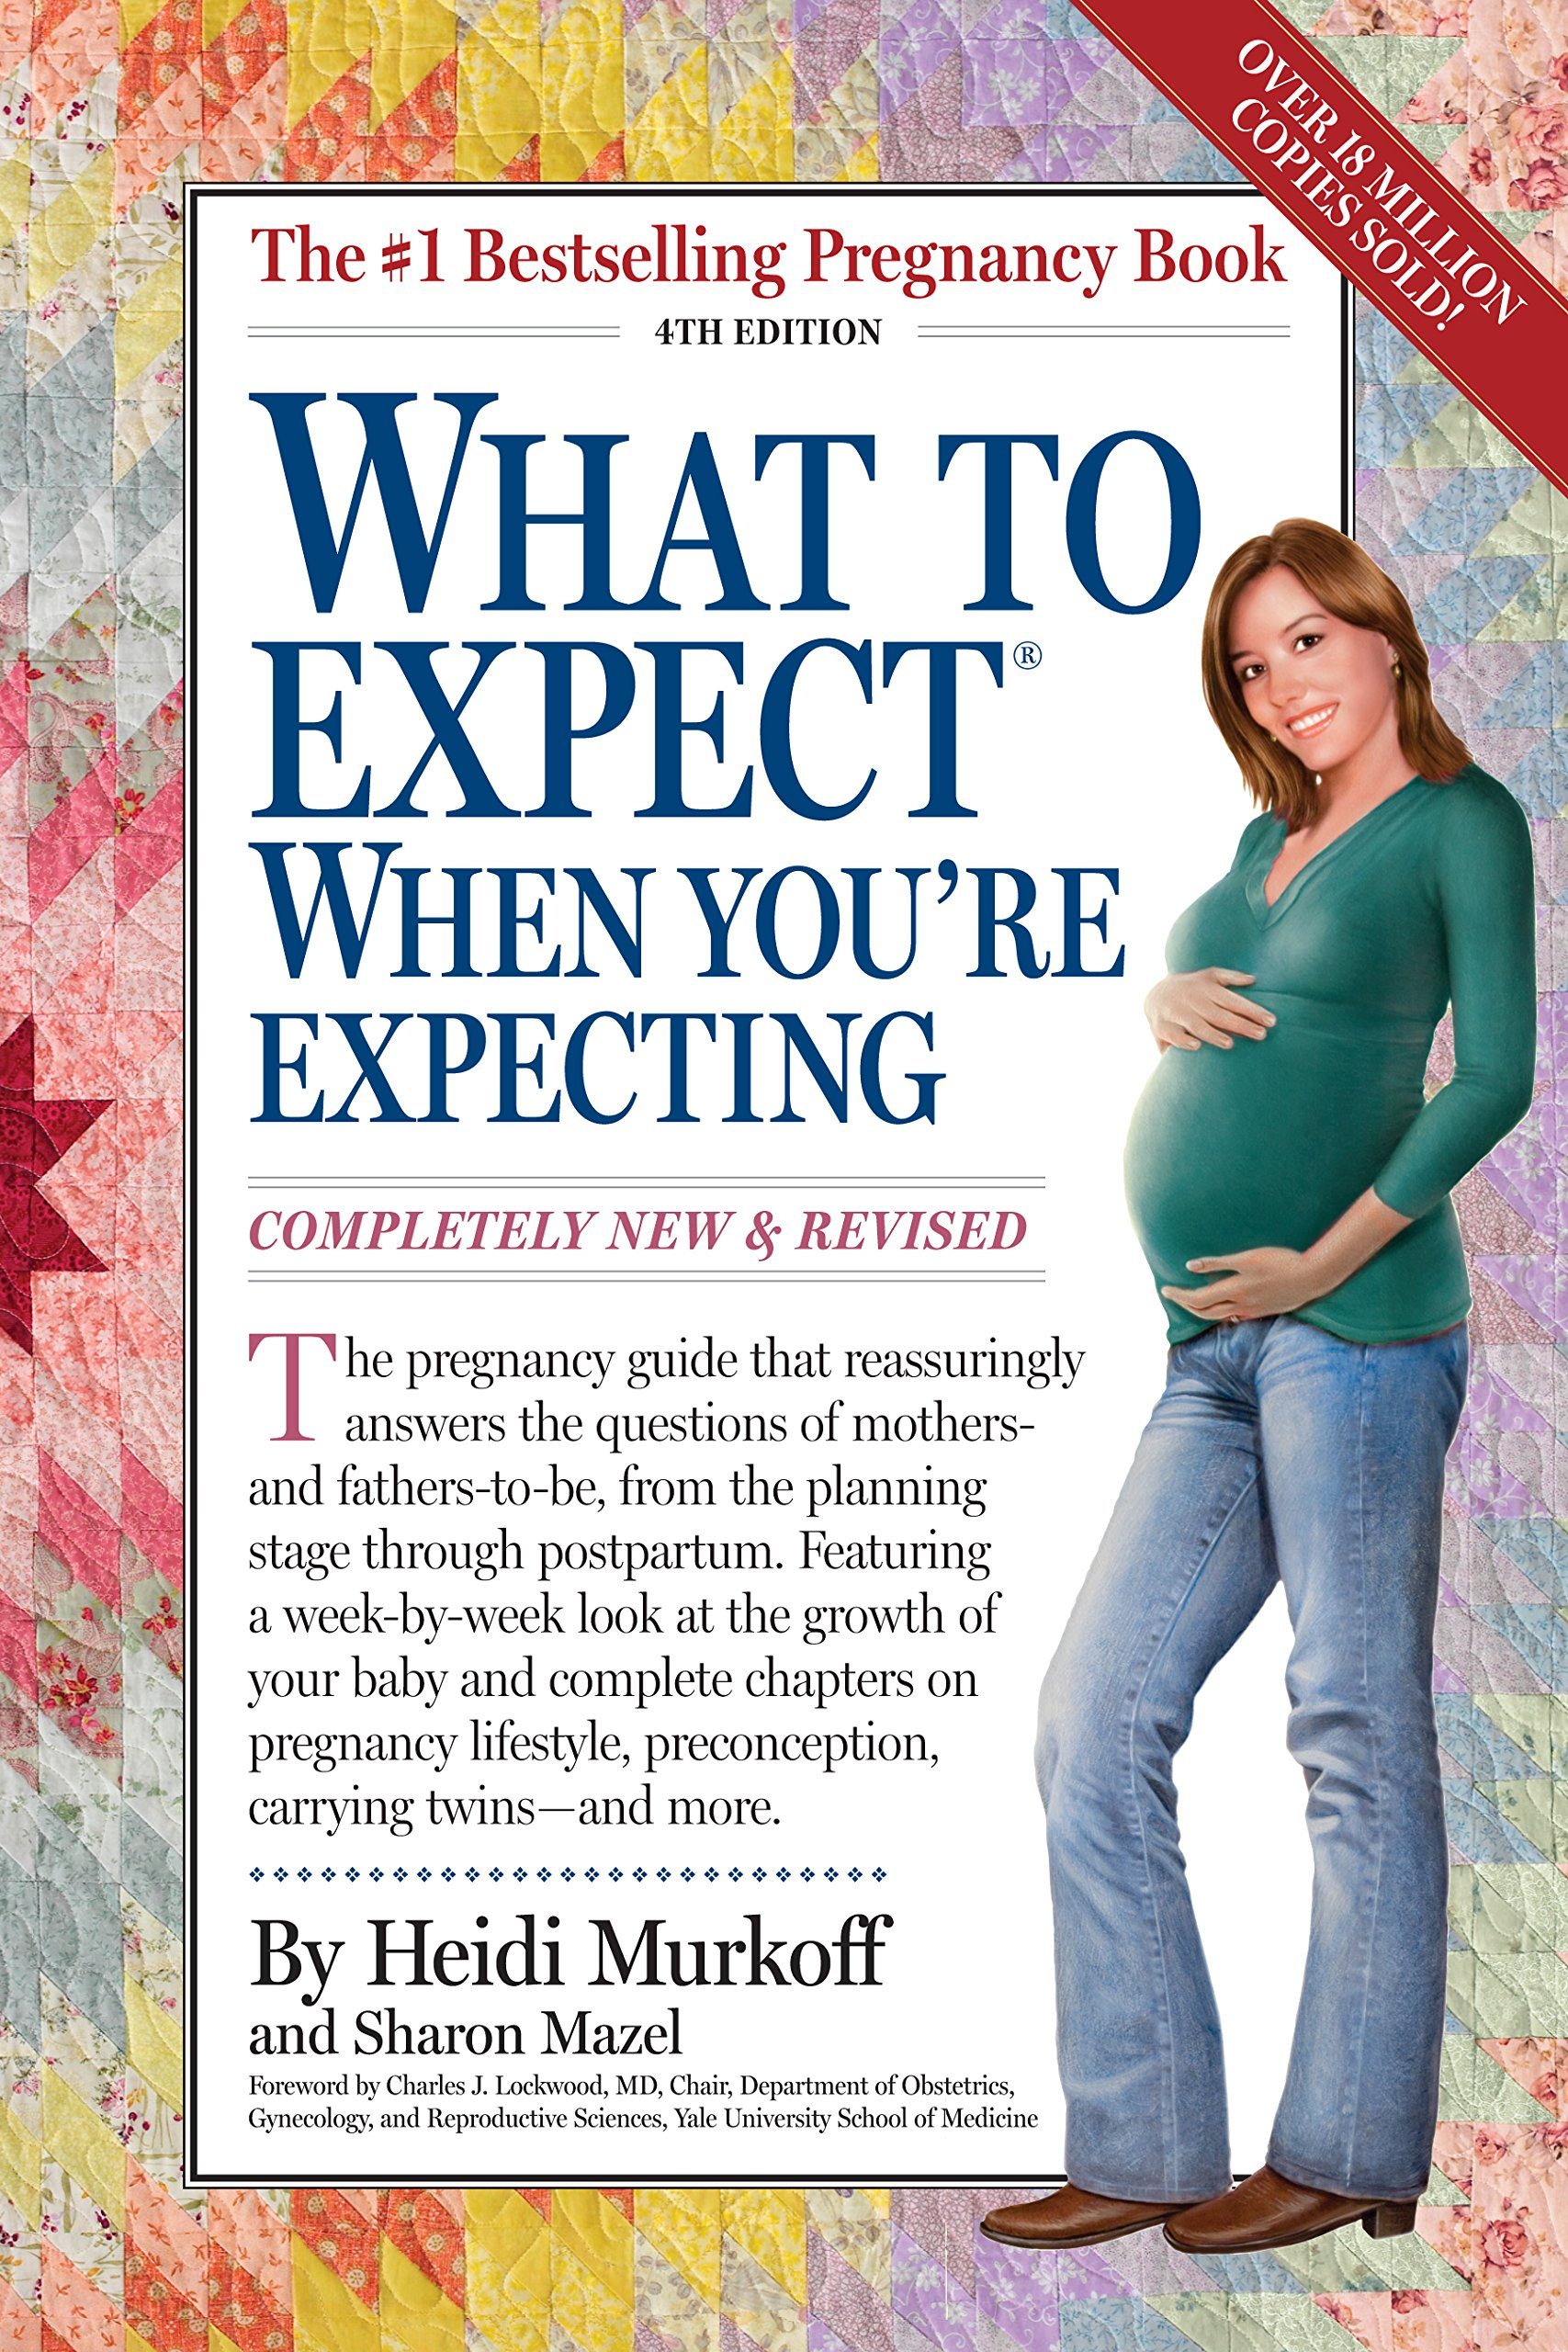 What to Expect When You're Expecting ISBN-13 9780761148579